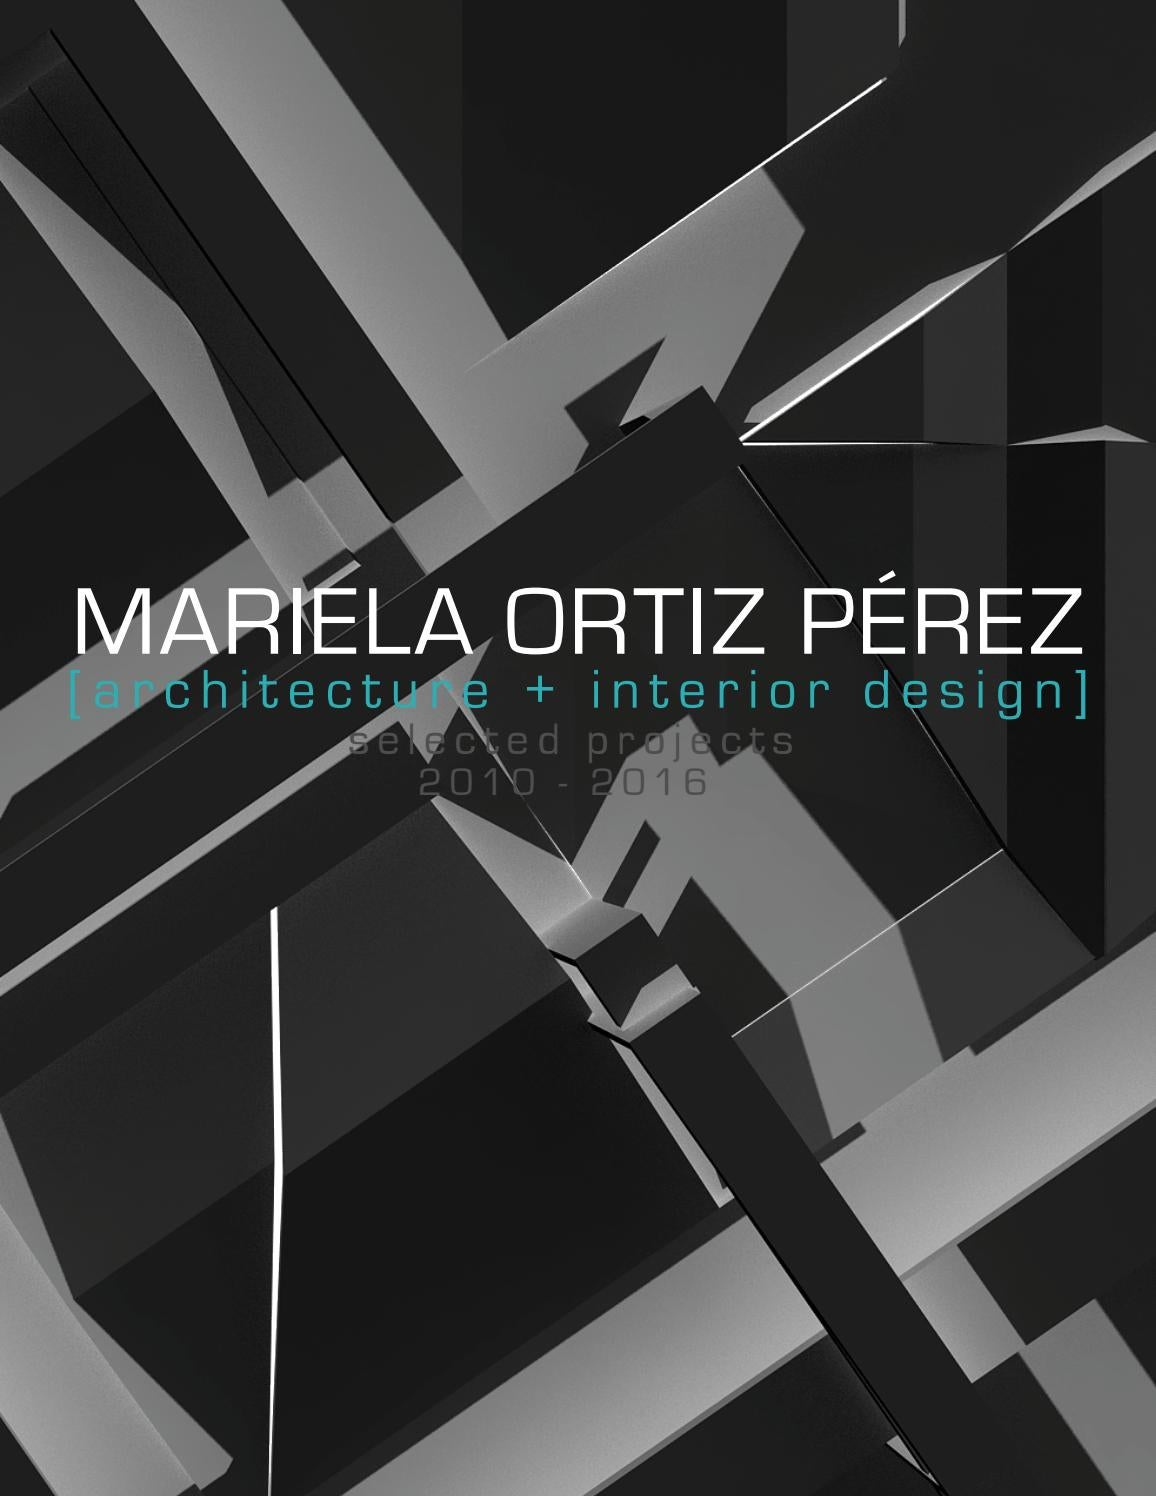 Mariela Ortiz Architecture Interior Design Selected Projects Work Experience By Mariela Ortiz Perez Issuu